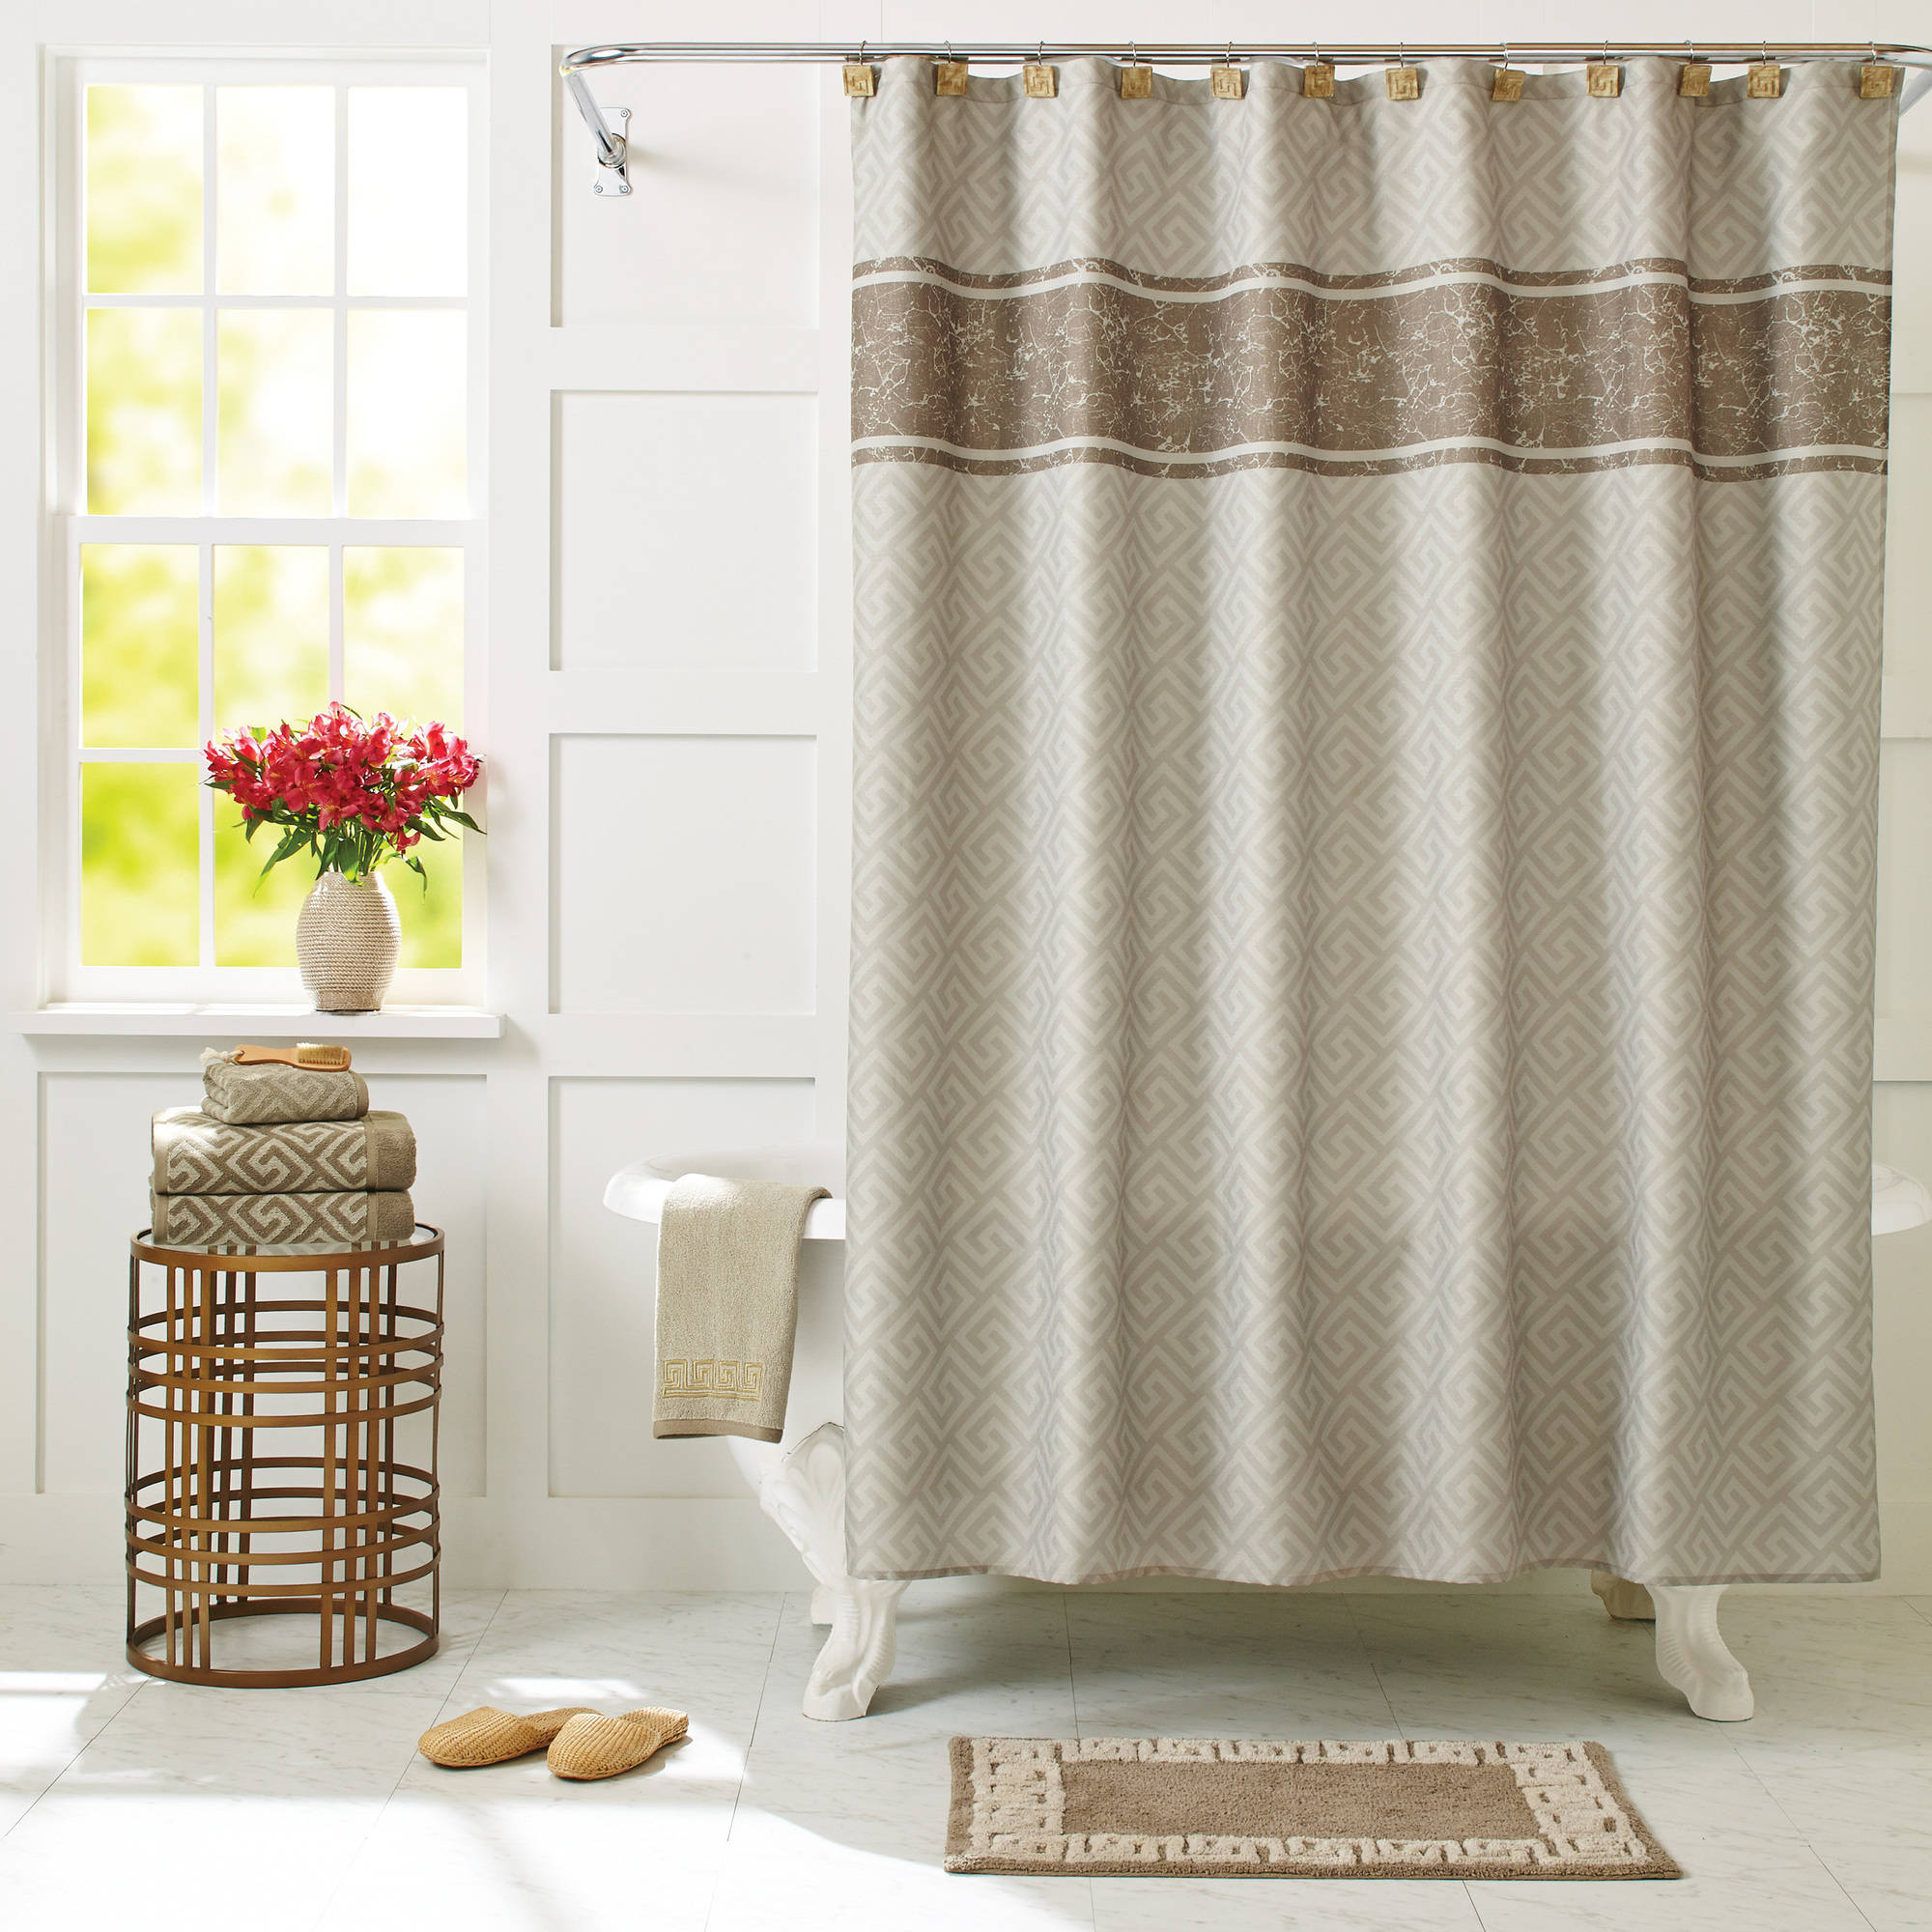 better homes and gardens greek key shower curtain - walmart